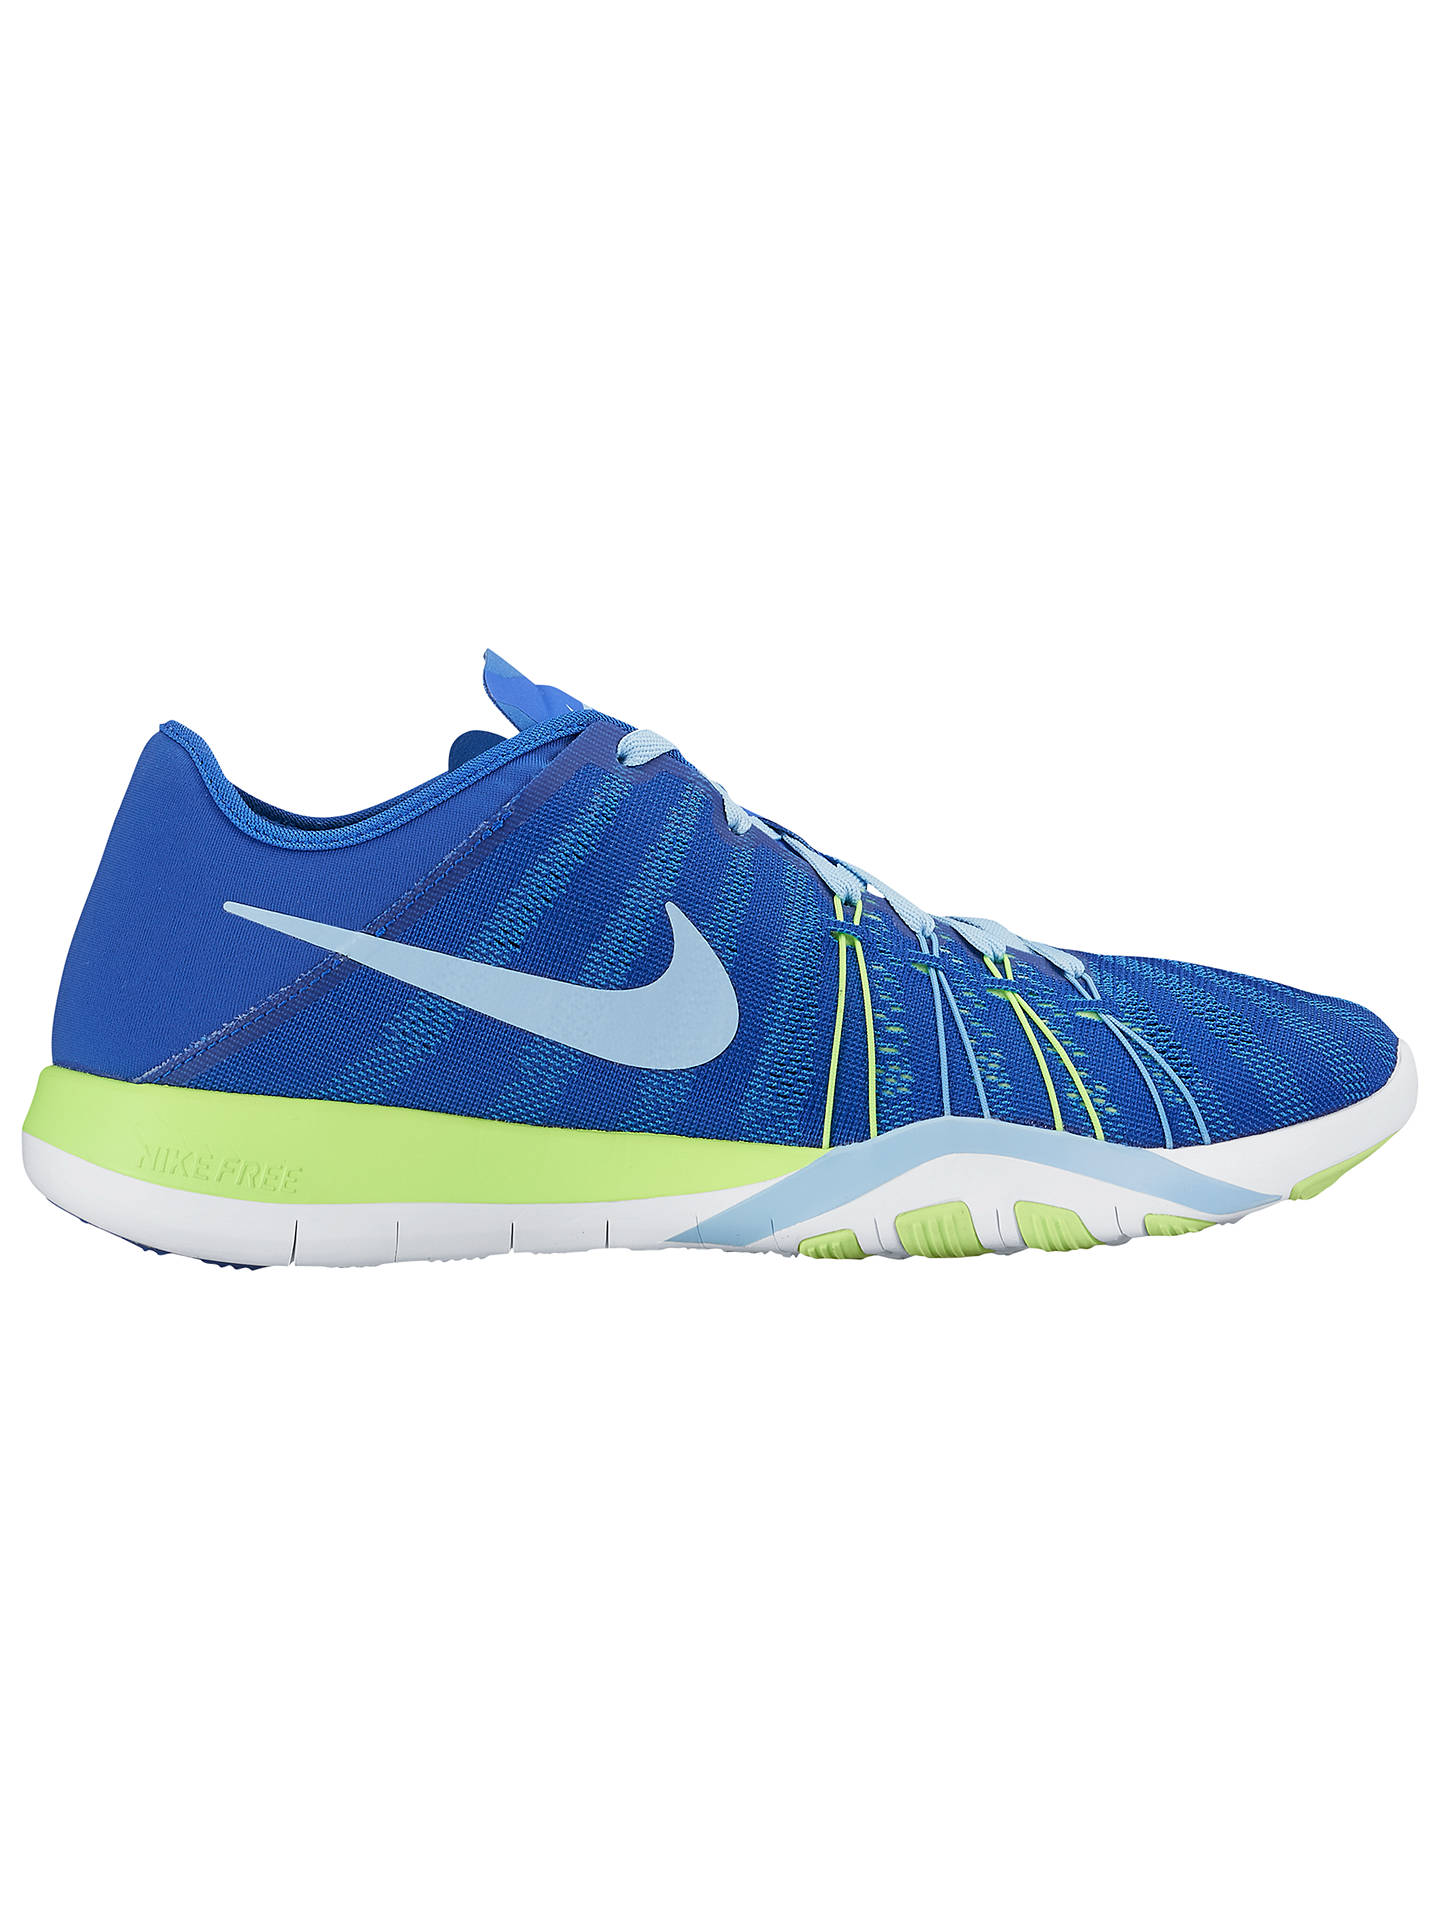 best service 581cc 9911a Buy Nike Free TR 6 Women s Cross Trainers, Blue Green, 4 Online at ...